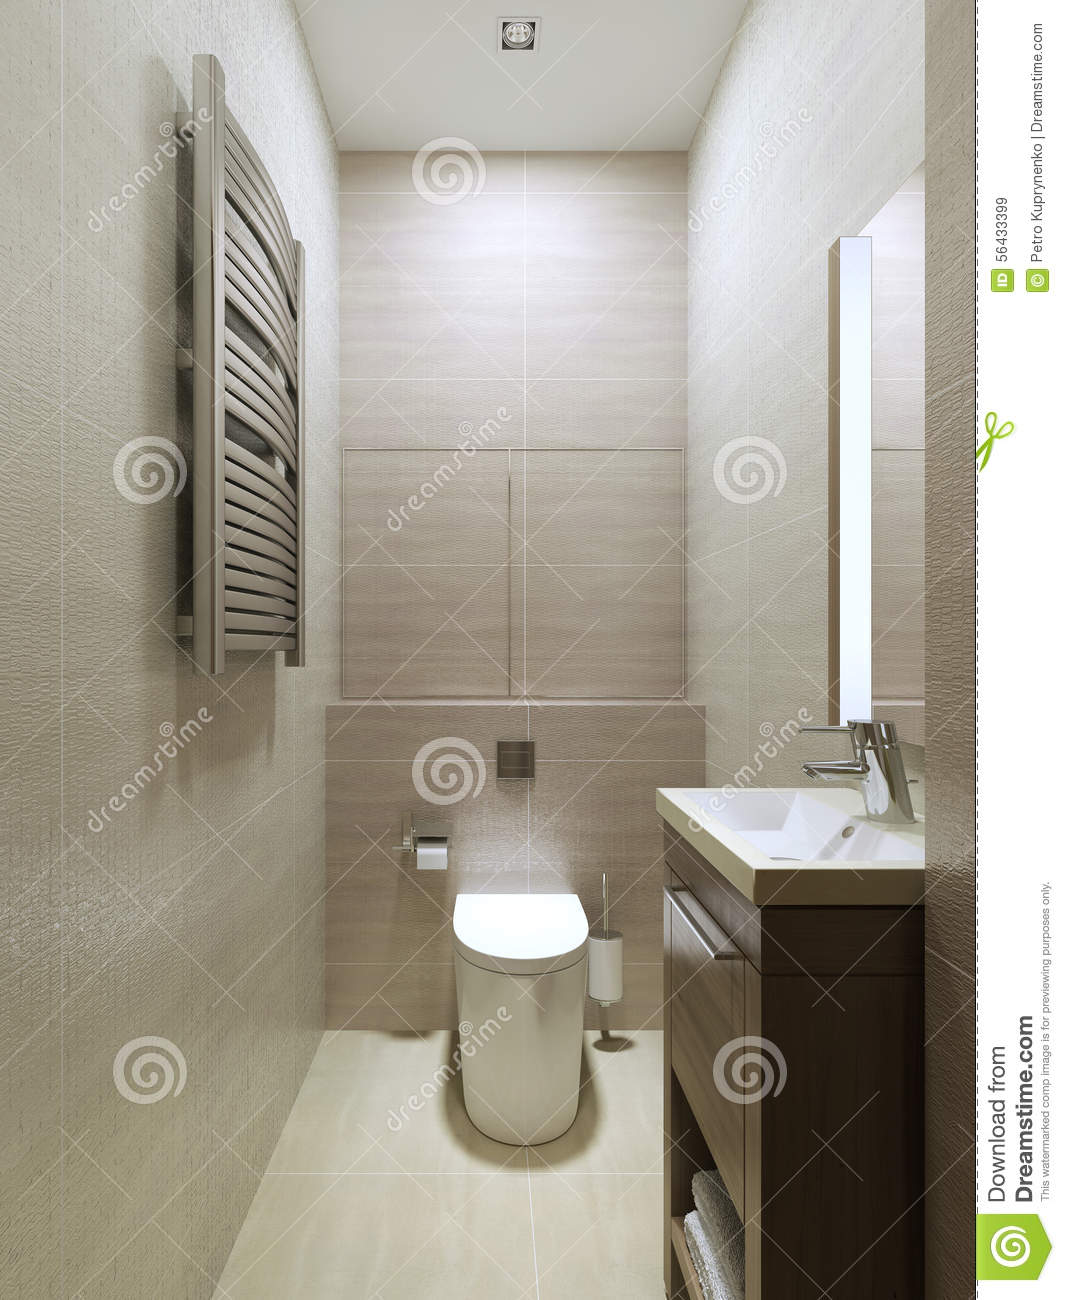 Wc modern style stock image image of interior pink for Small wc design